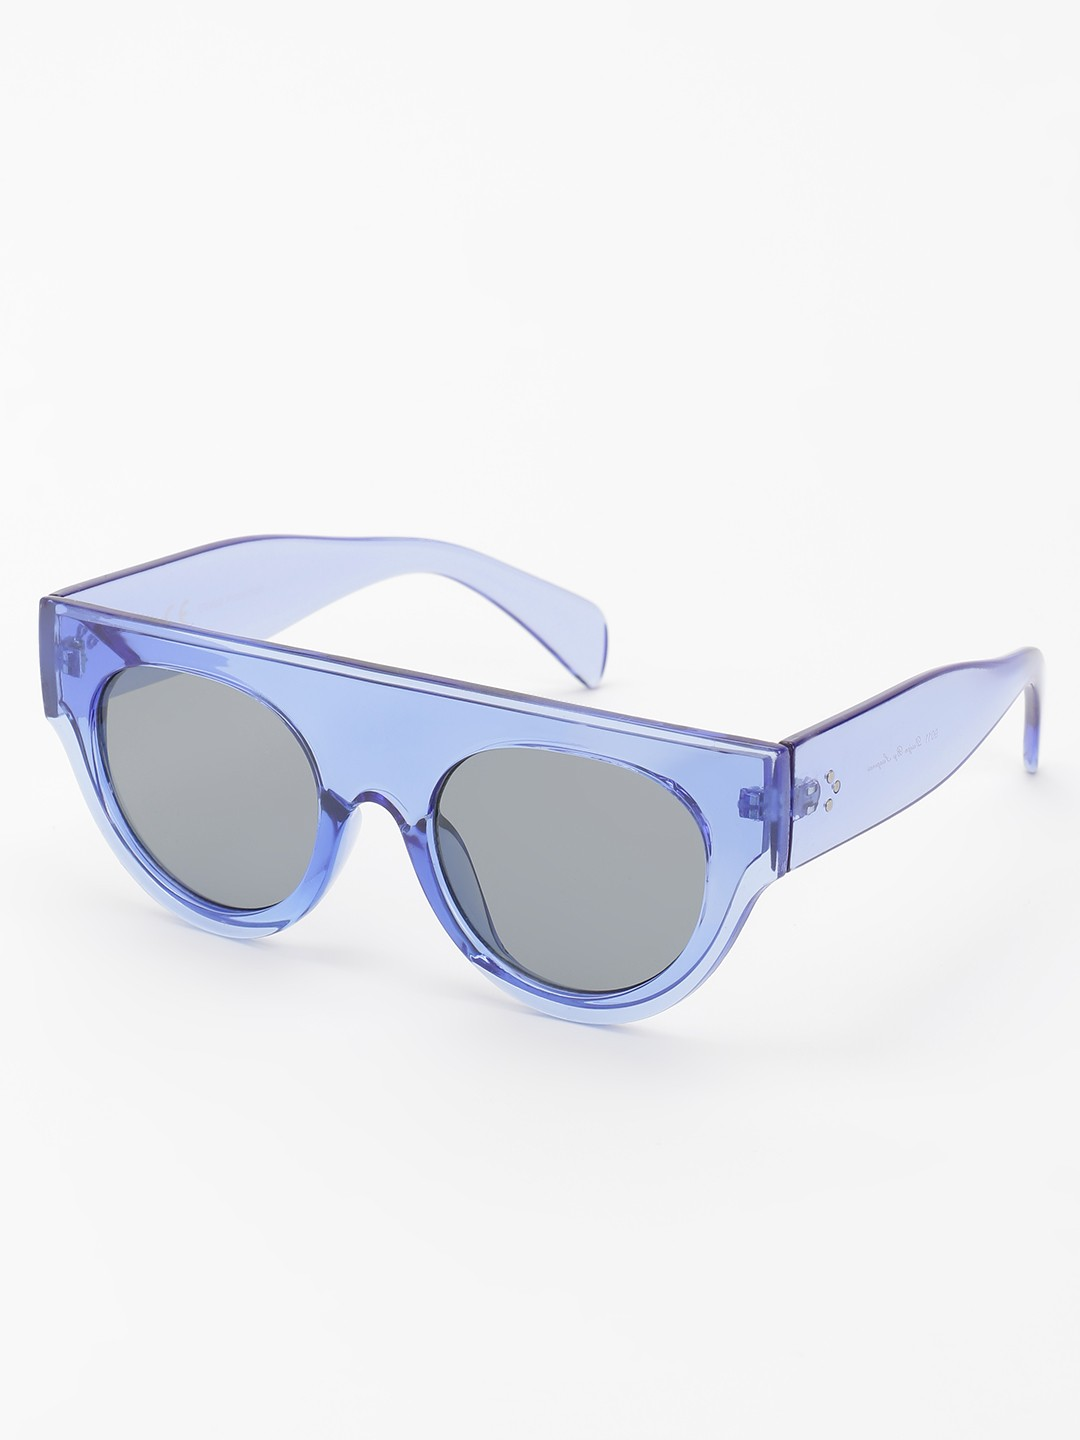 KOOVS Blue Tinted Lens Retro Sunglasses 1